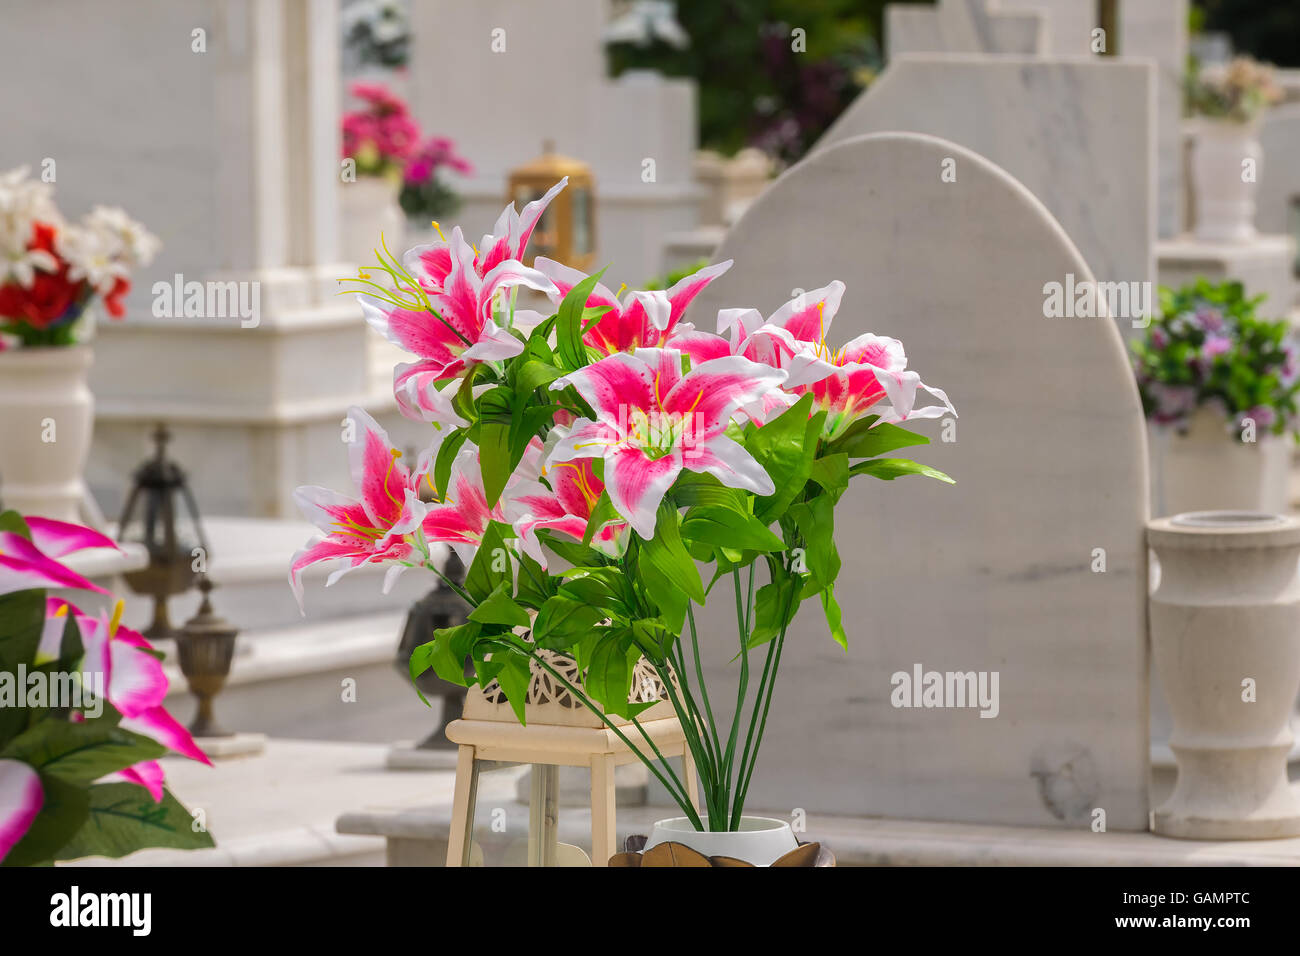 Funeral flowers stock photos funeral flowers stock images alamy beautiful flowers on a grave after a funeral stock image izmirmasajfo